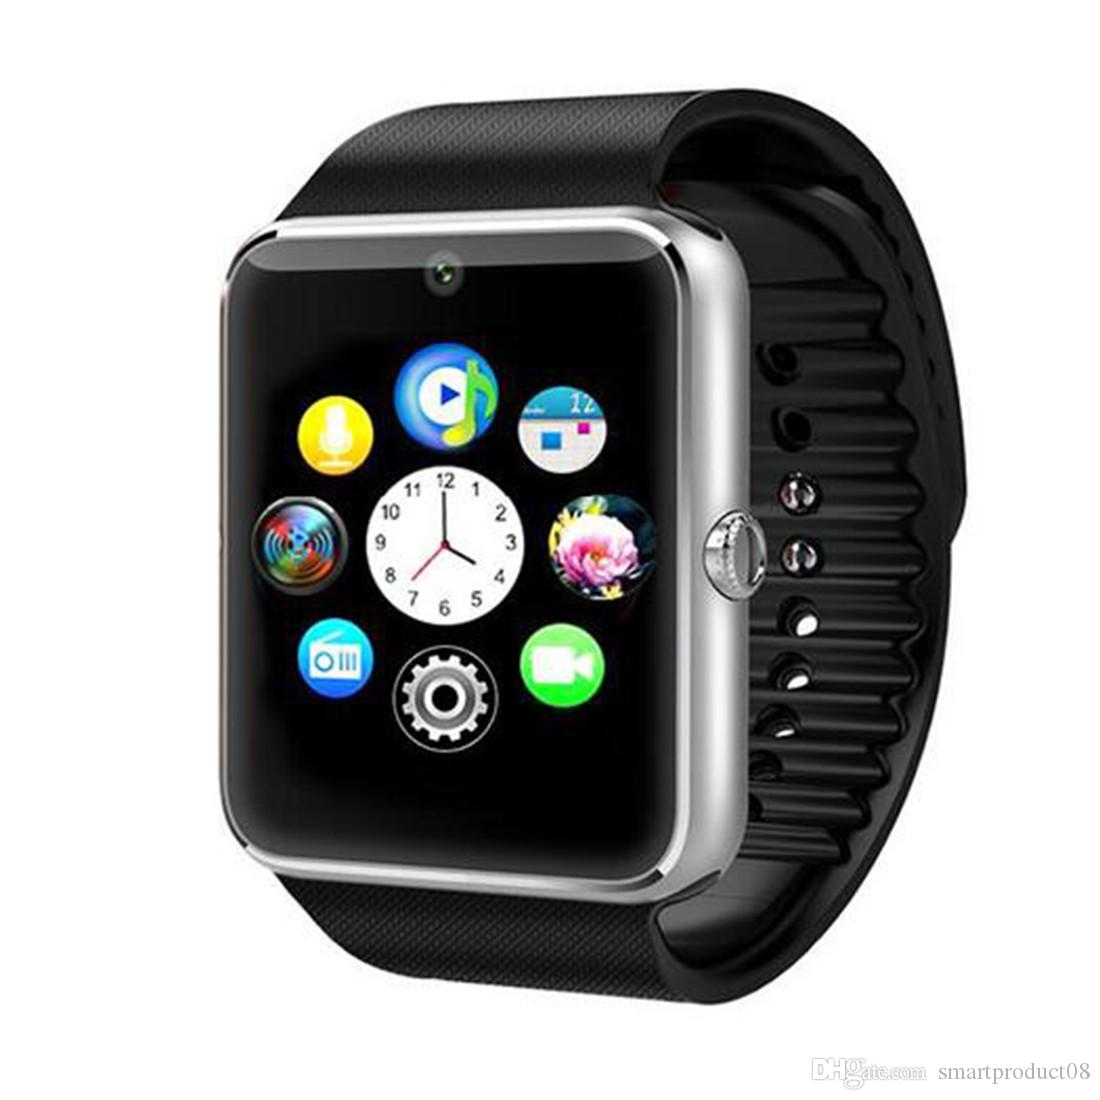 aeef789c9c5 Original Android Smart Watch DZ09 A1 GT08 Smartwatch Phone With Whatsapp,  Facebook And Twitter Fit Smart Watches Flip Smart Watch From  Smartproduct08, ...